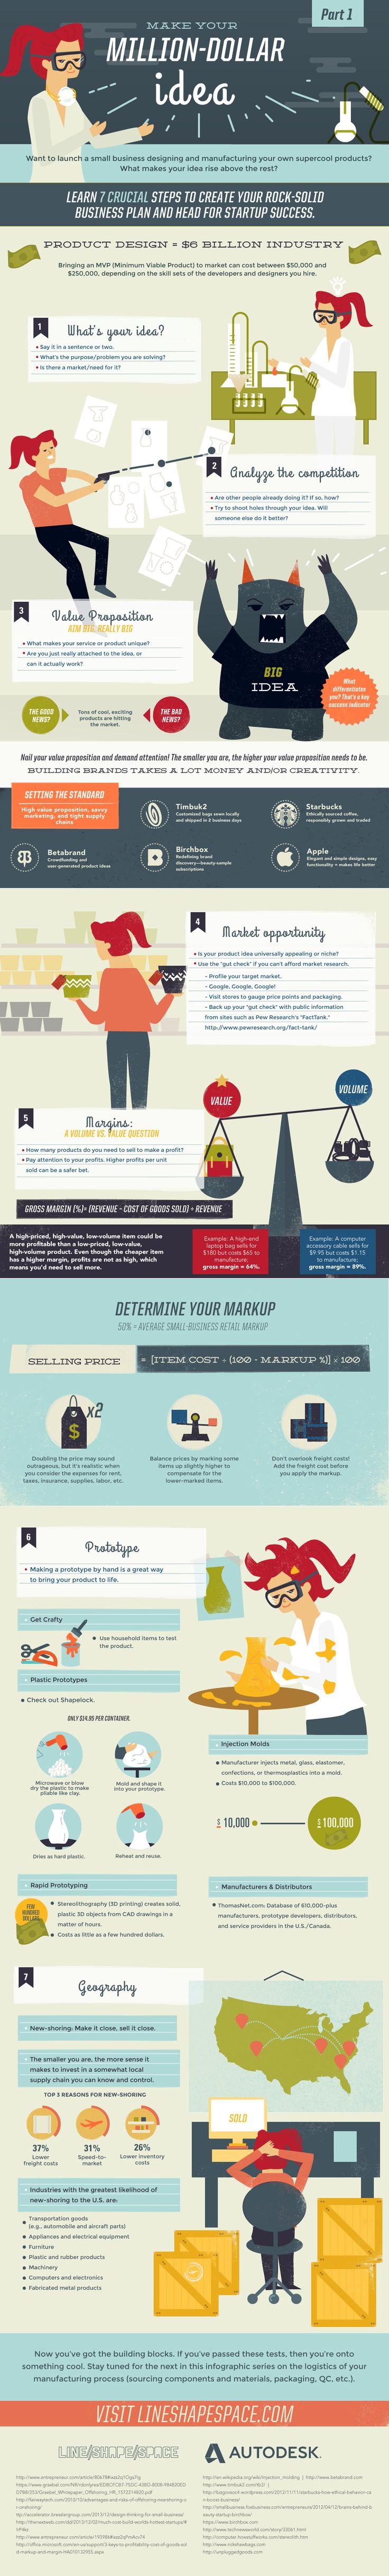 Make Your Million-Dollar Idea #Infographic #Business #Startup http://www.tradingprofits4u.com/